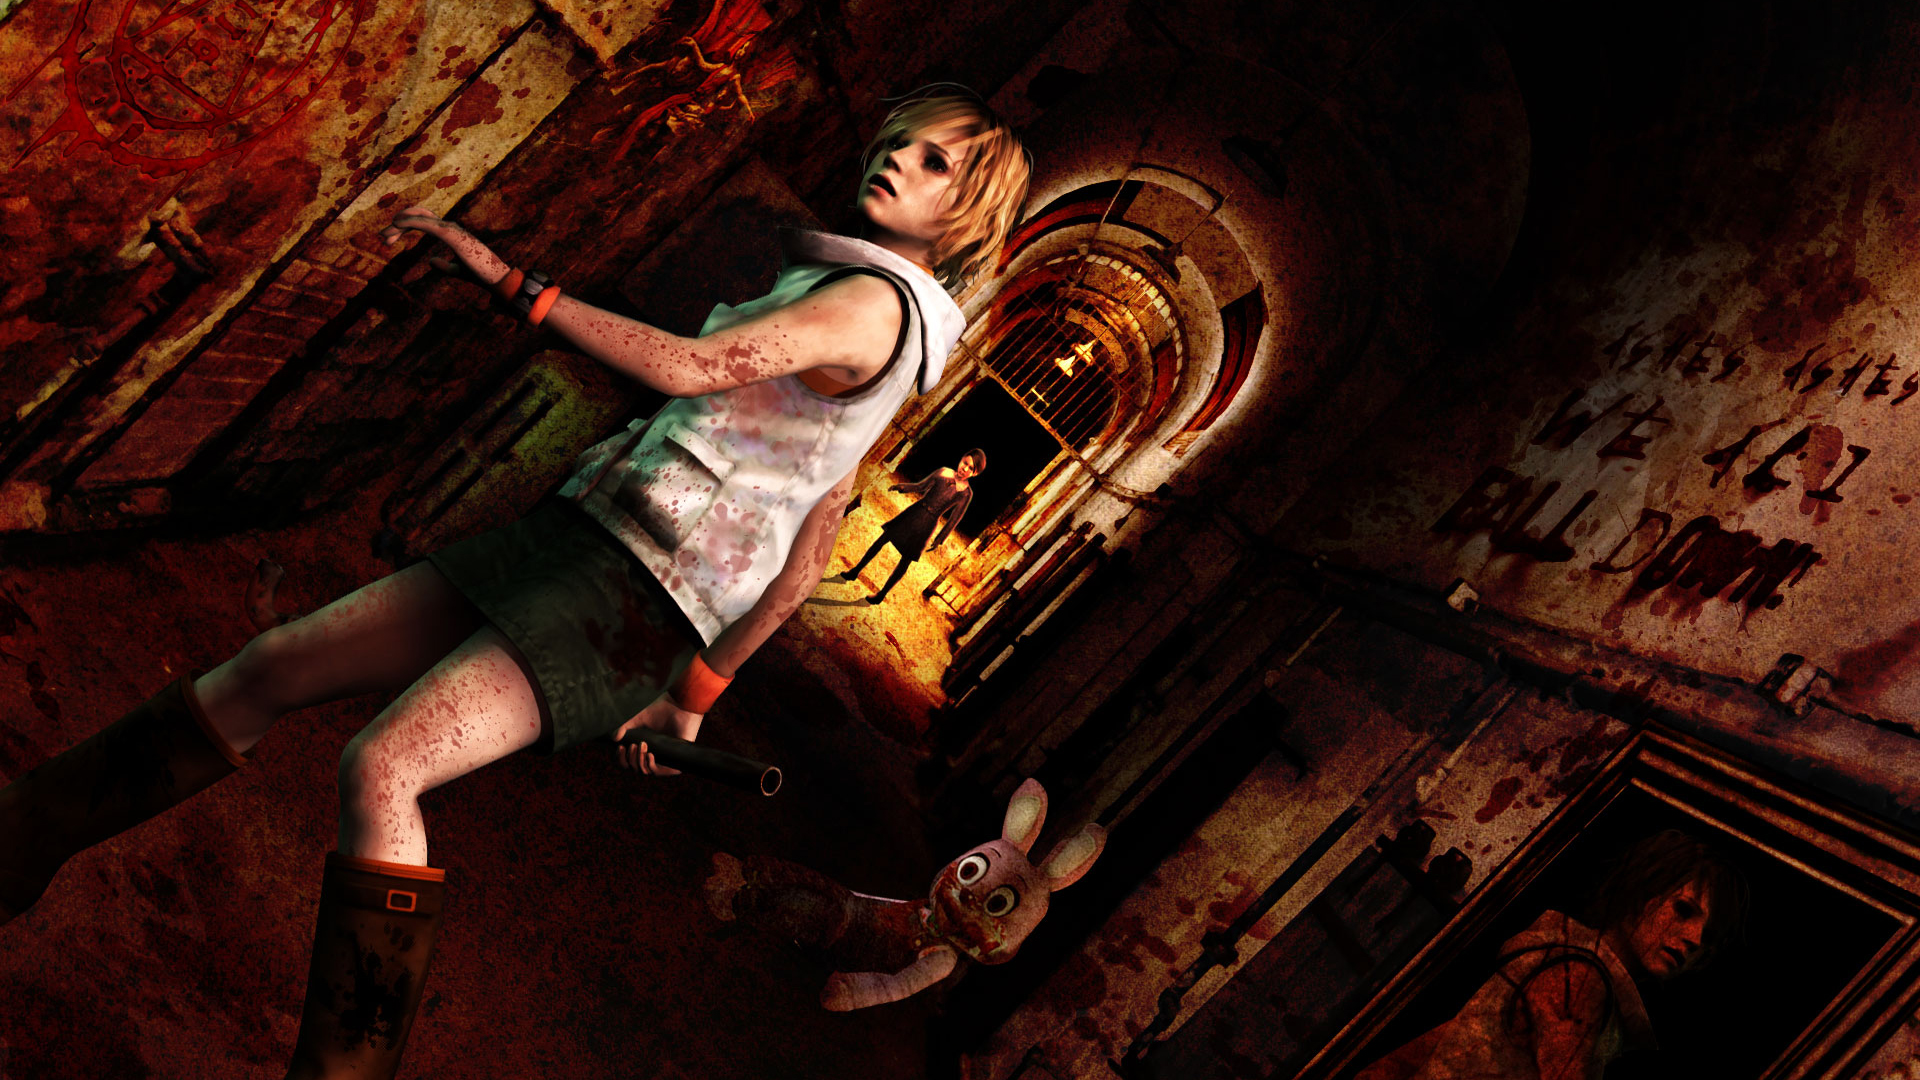 Game   Silent Hill 3 Silent Hill Horror Creepy Spooky Scary Wallpaper 1920x1080